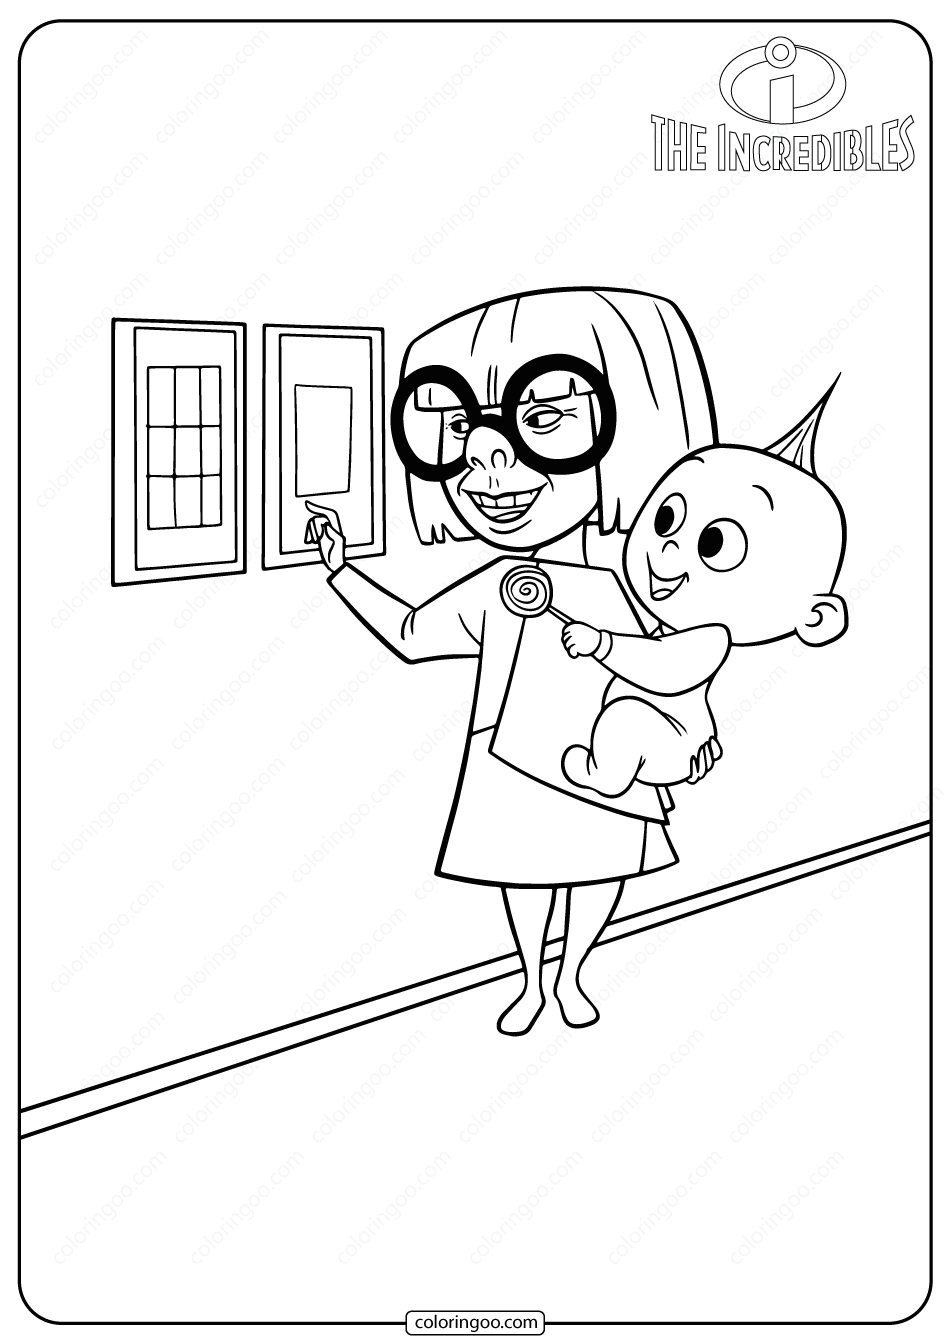 The Incredibles Edna Mode & Jack Jack Coloring Pages